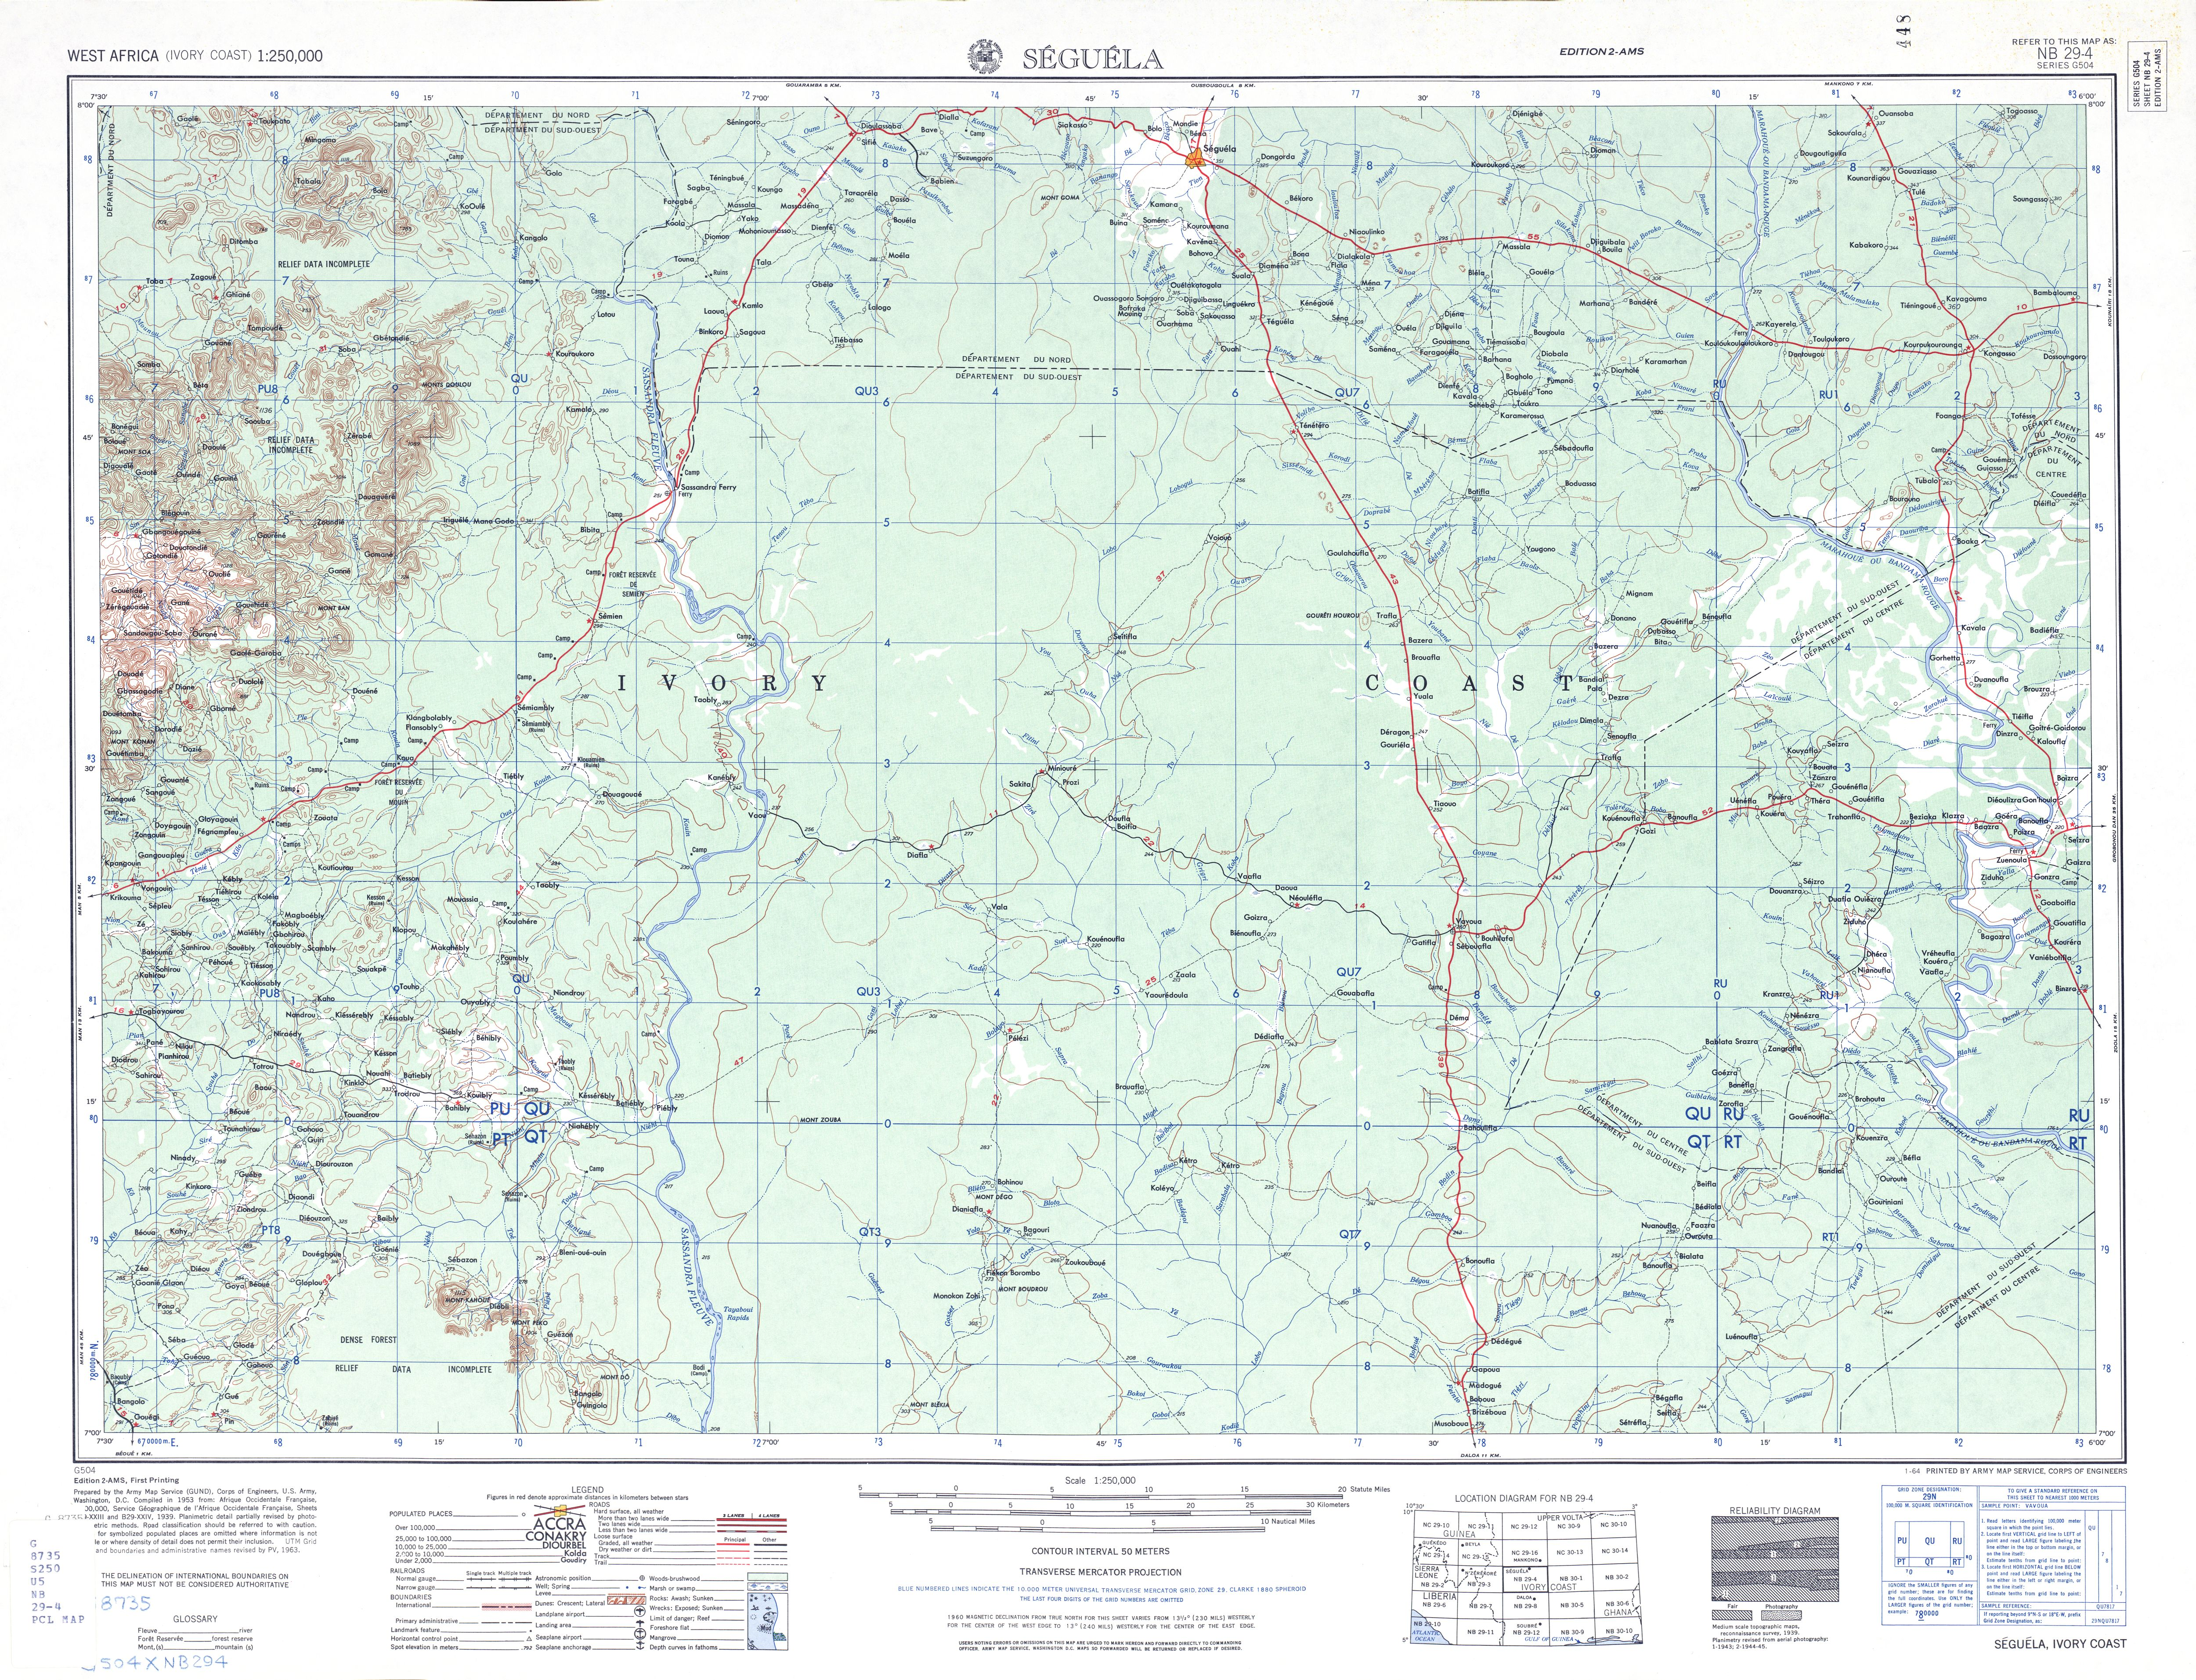 Seguela Topographic Map Sheet, Western Africa 1955